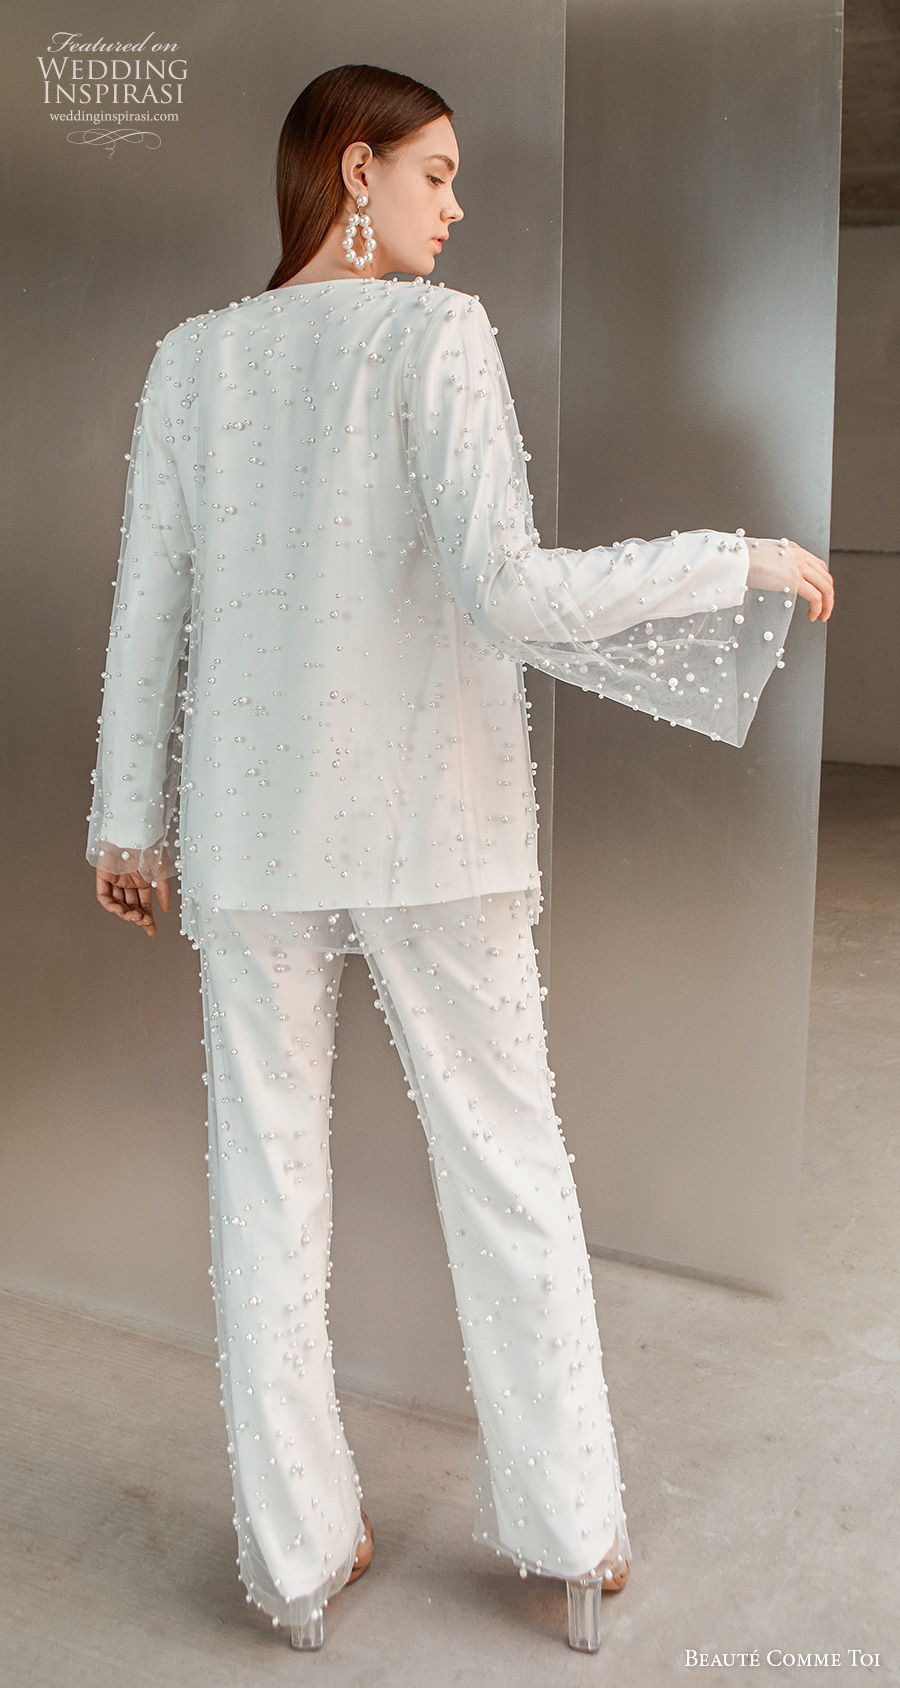 beaute comme toi 2021 bridal long sleeves 3 piece suit full embellishment modern sexy beaded jacket pants wedding dress (tricia) bv